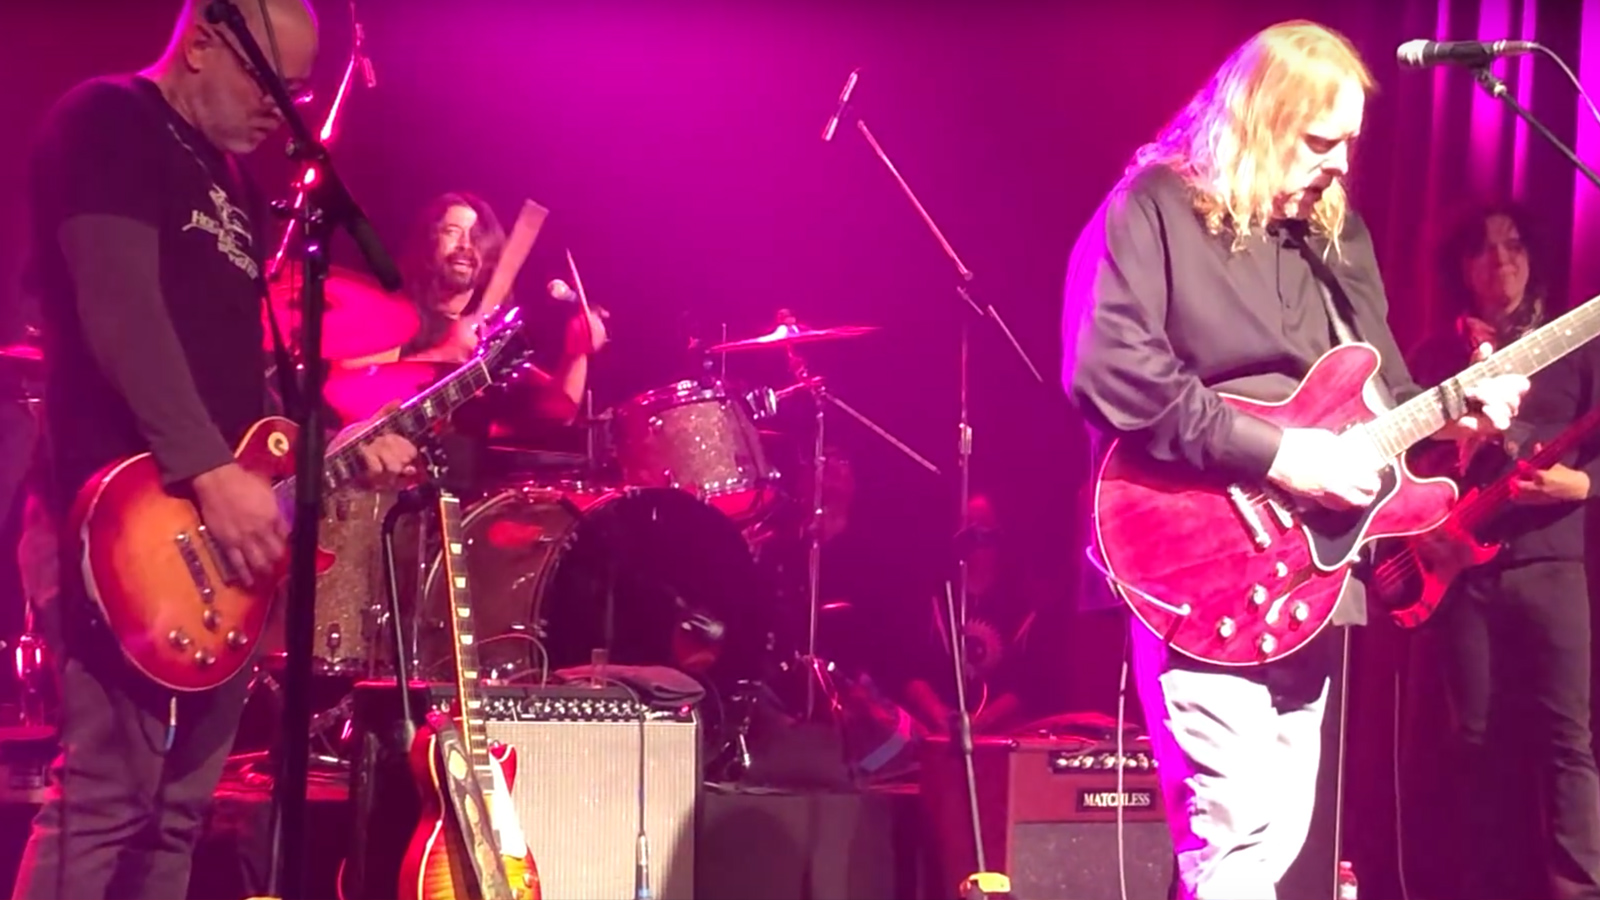 """See Dave Grohl Cover Nirvana's """"All Apologies"""" With Gov't Mule's Warren Haynes"""